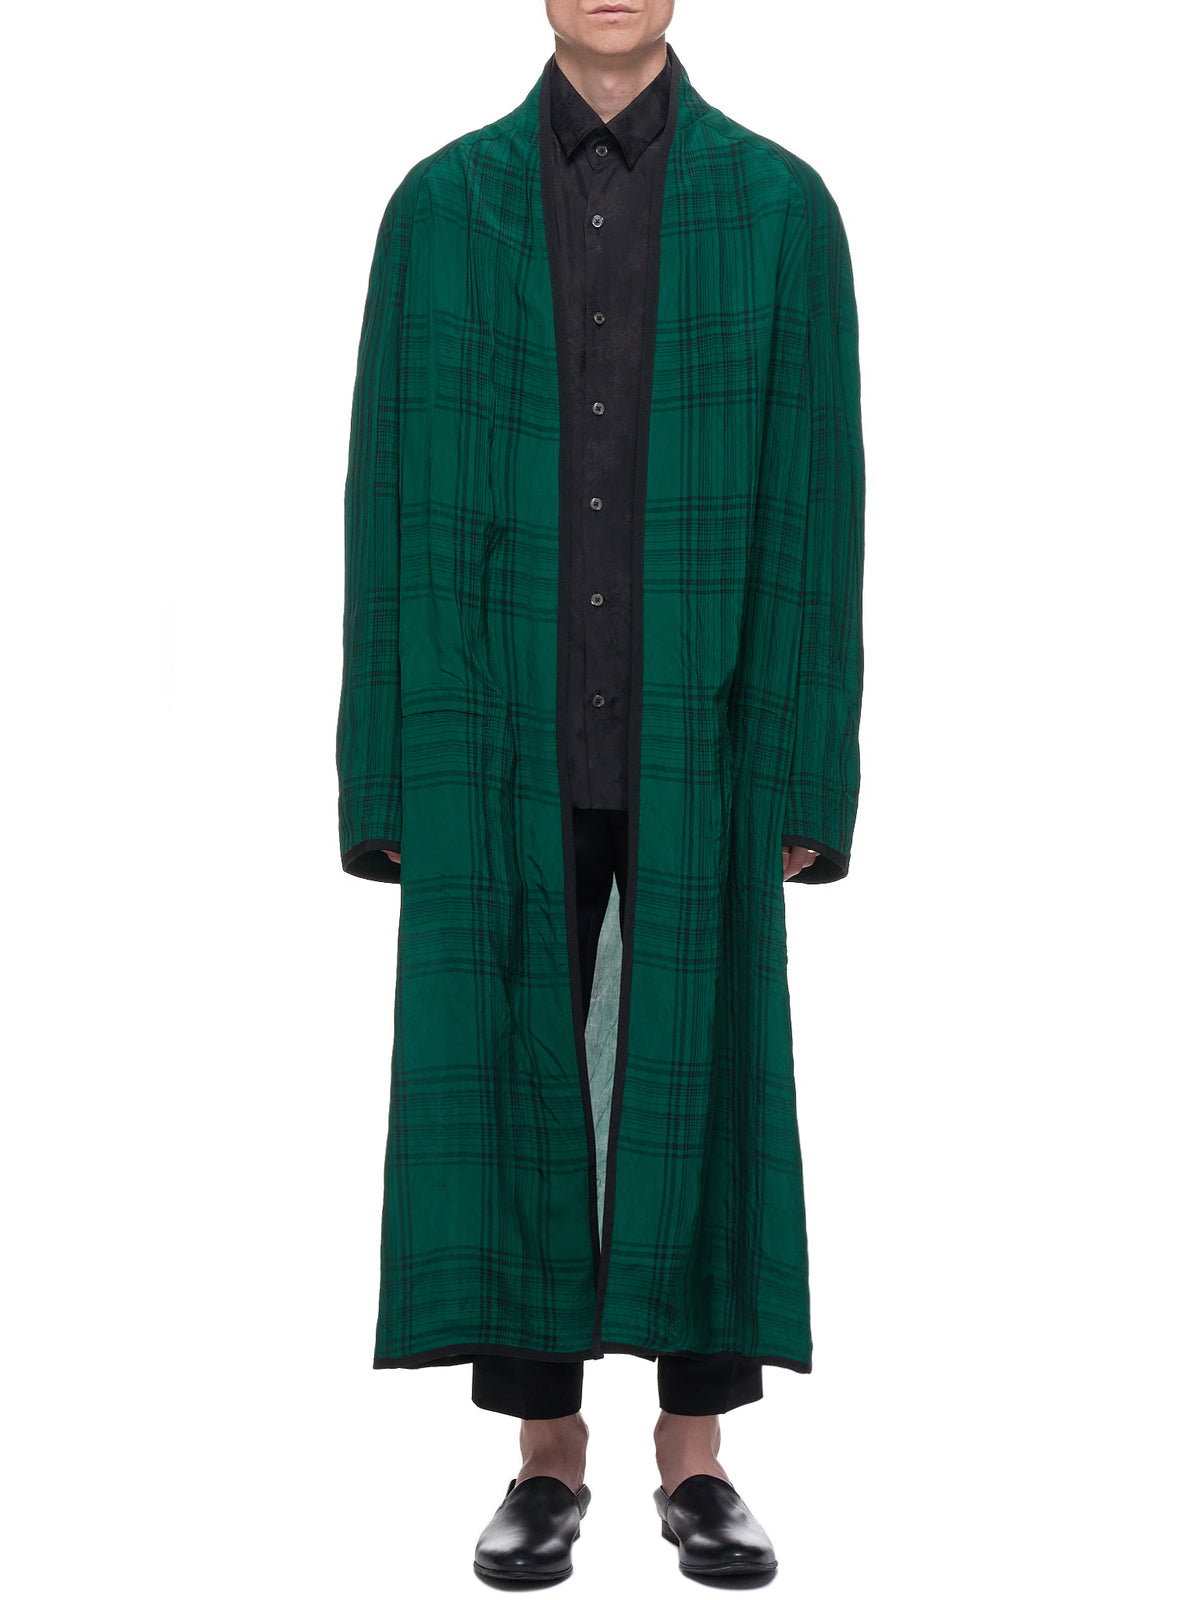 Montauk Coat (193-3104-135-048-GREEN-BLACK)